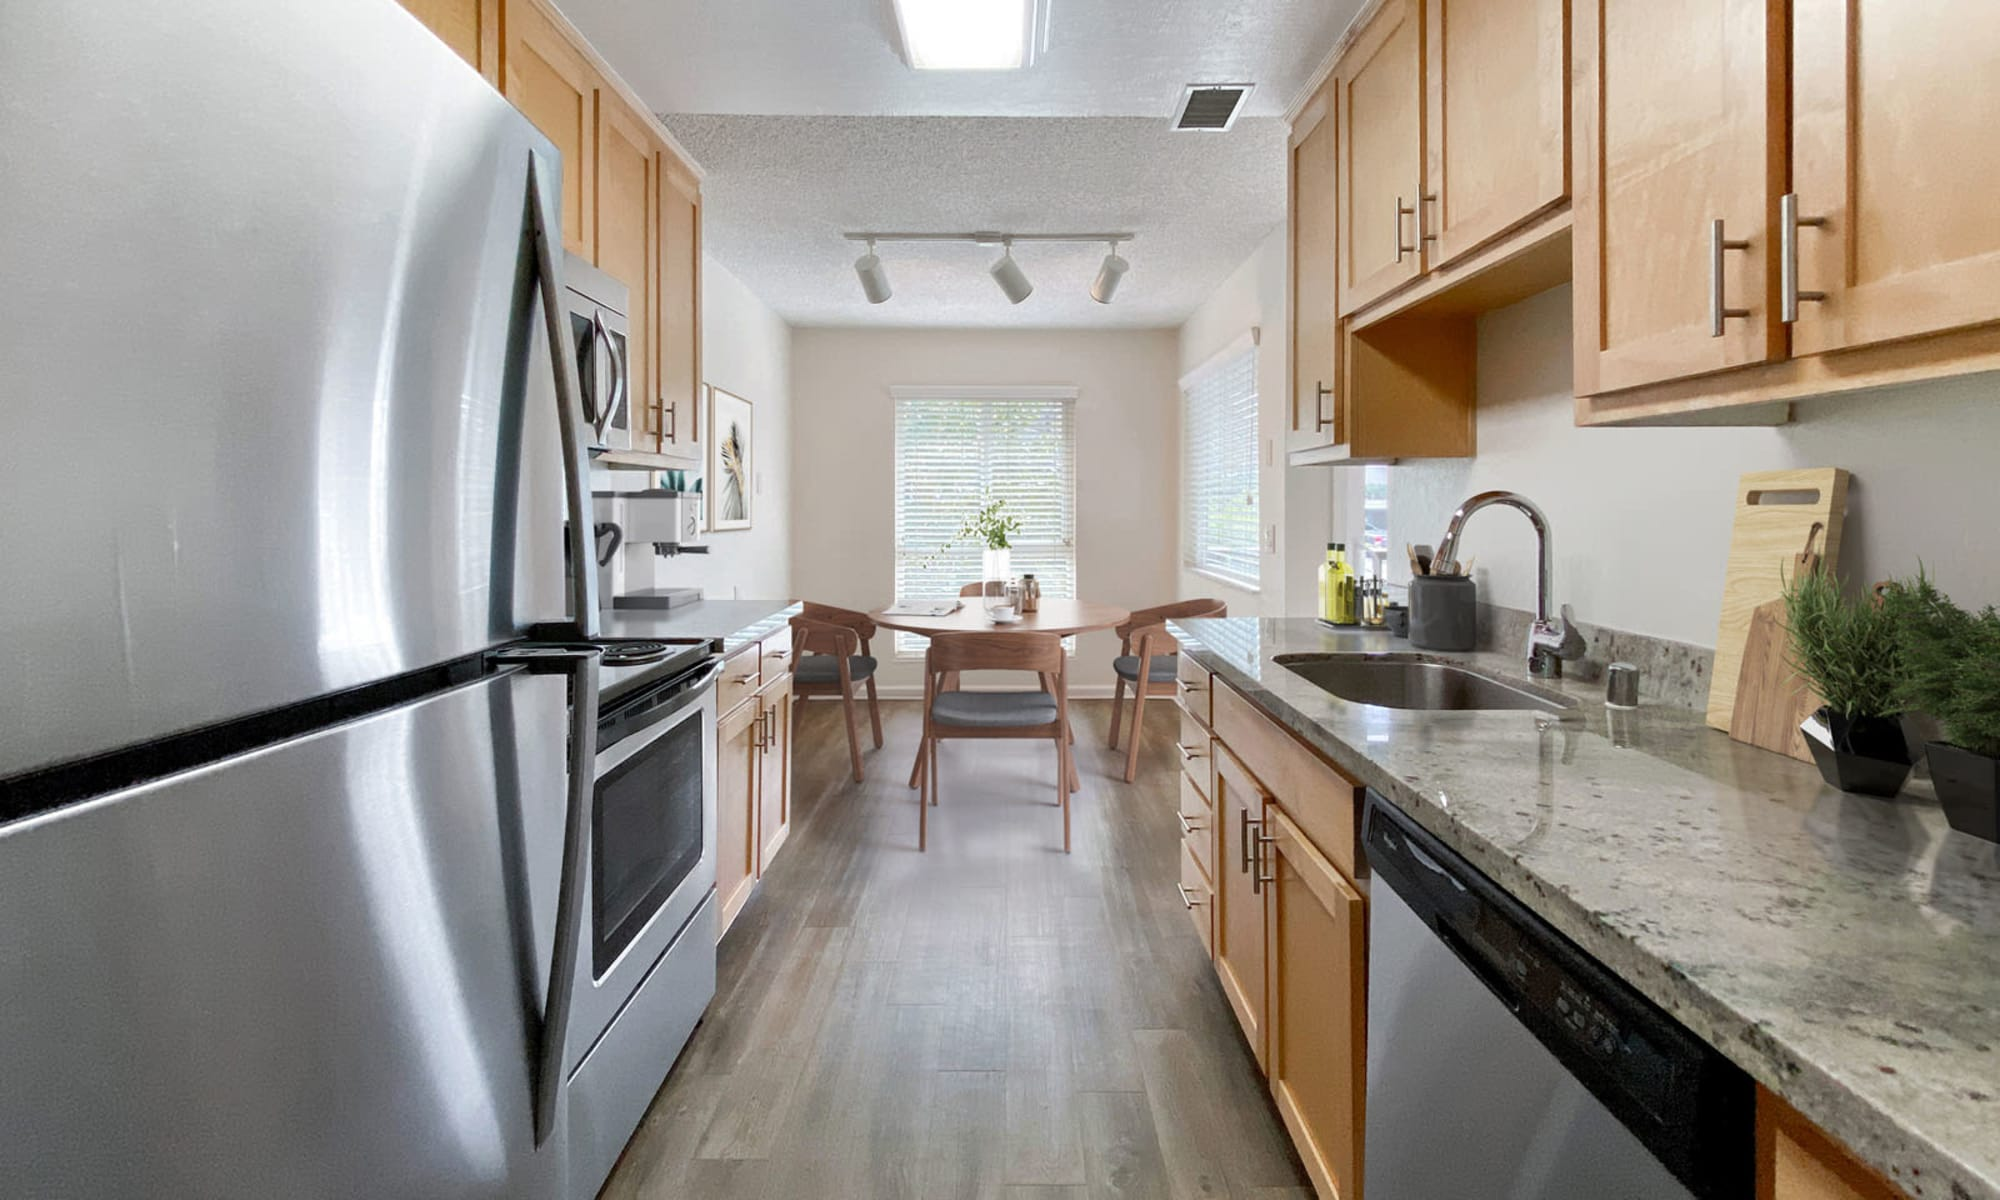 Stainless-steel appliances and granite countertops in a model home's kitchen at Pleasanton Glen Apartment Homes in Pleasanton, California